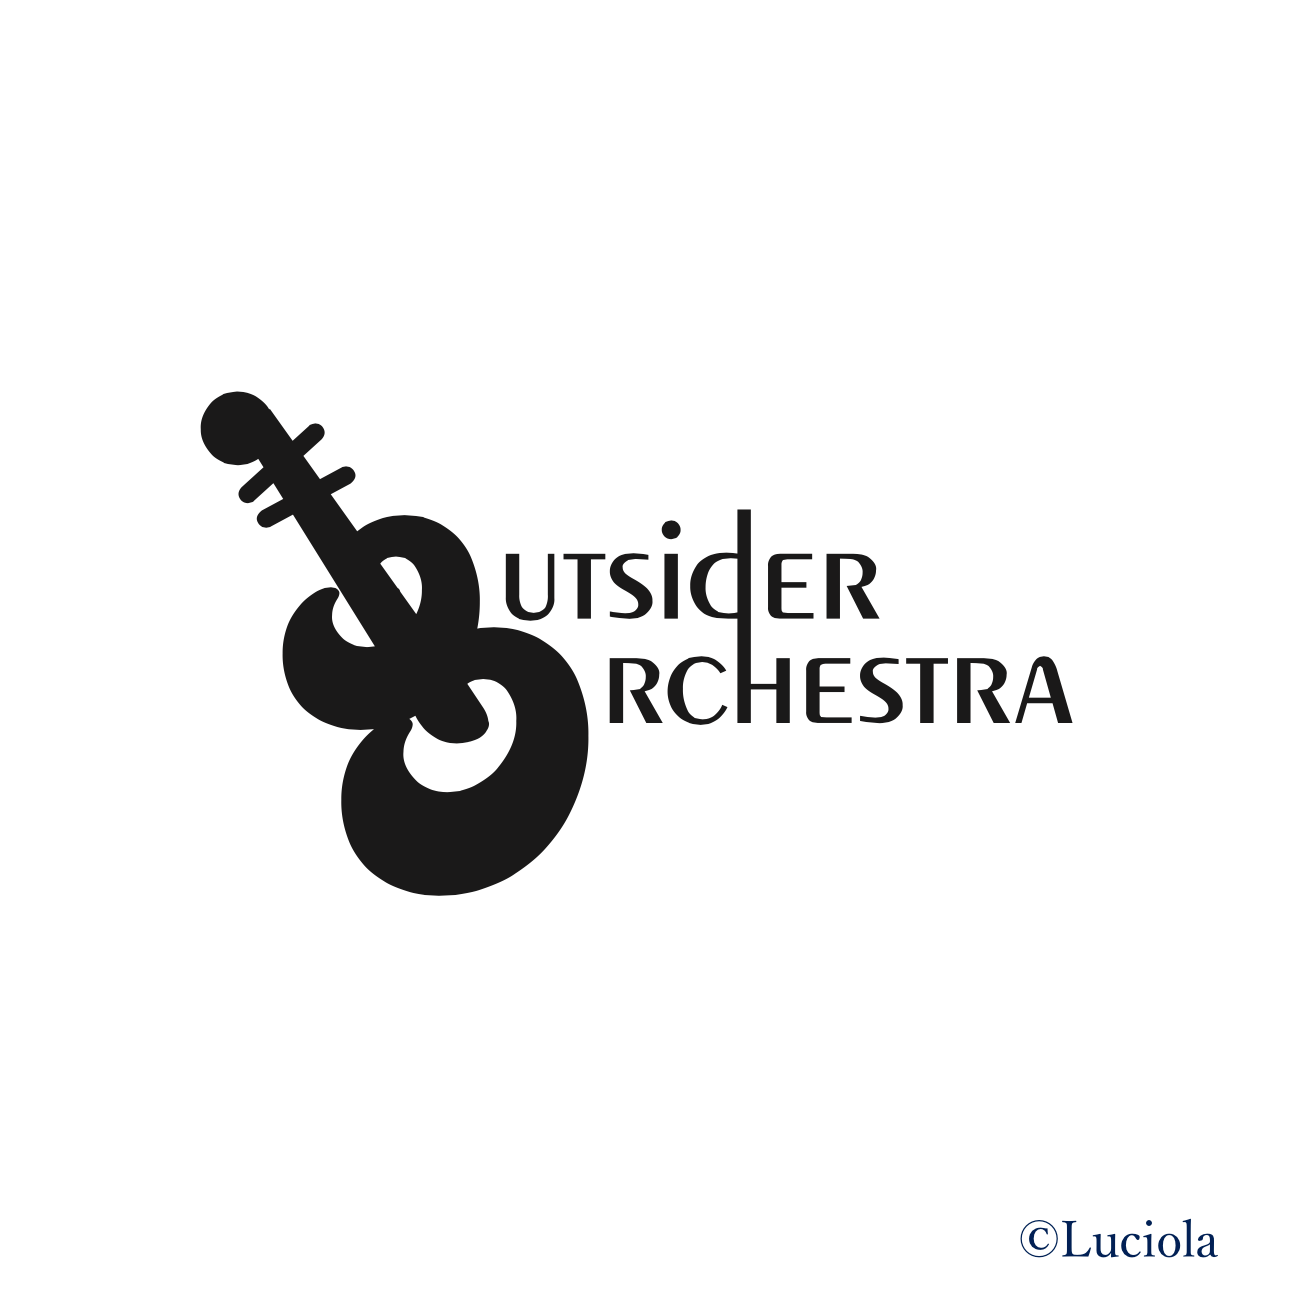 Outsider Orchestra ロゴ1